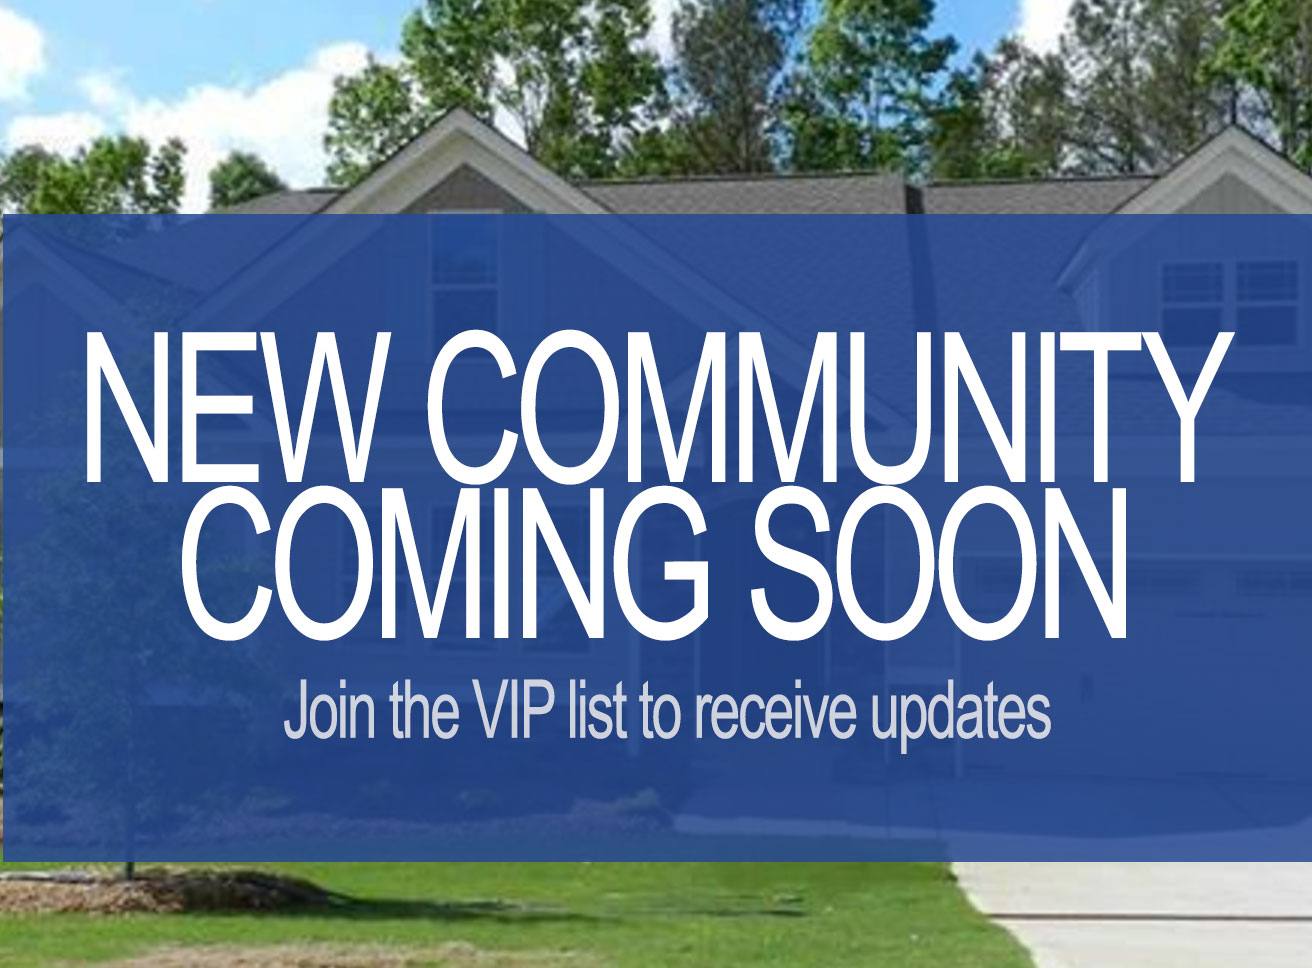 New Community Coming Soon. Join the VIP list to receive updates